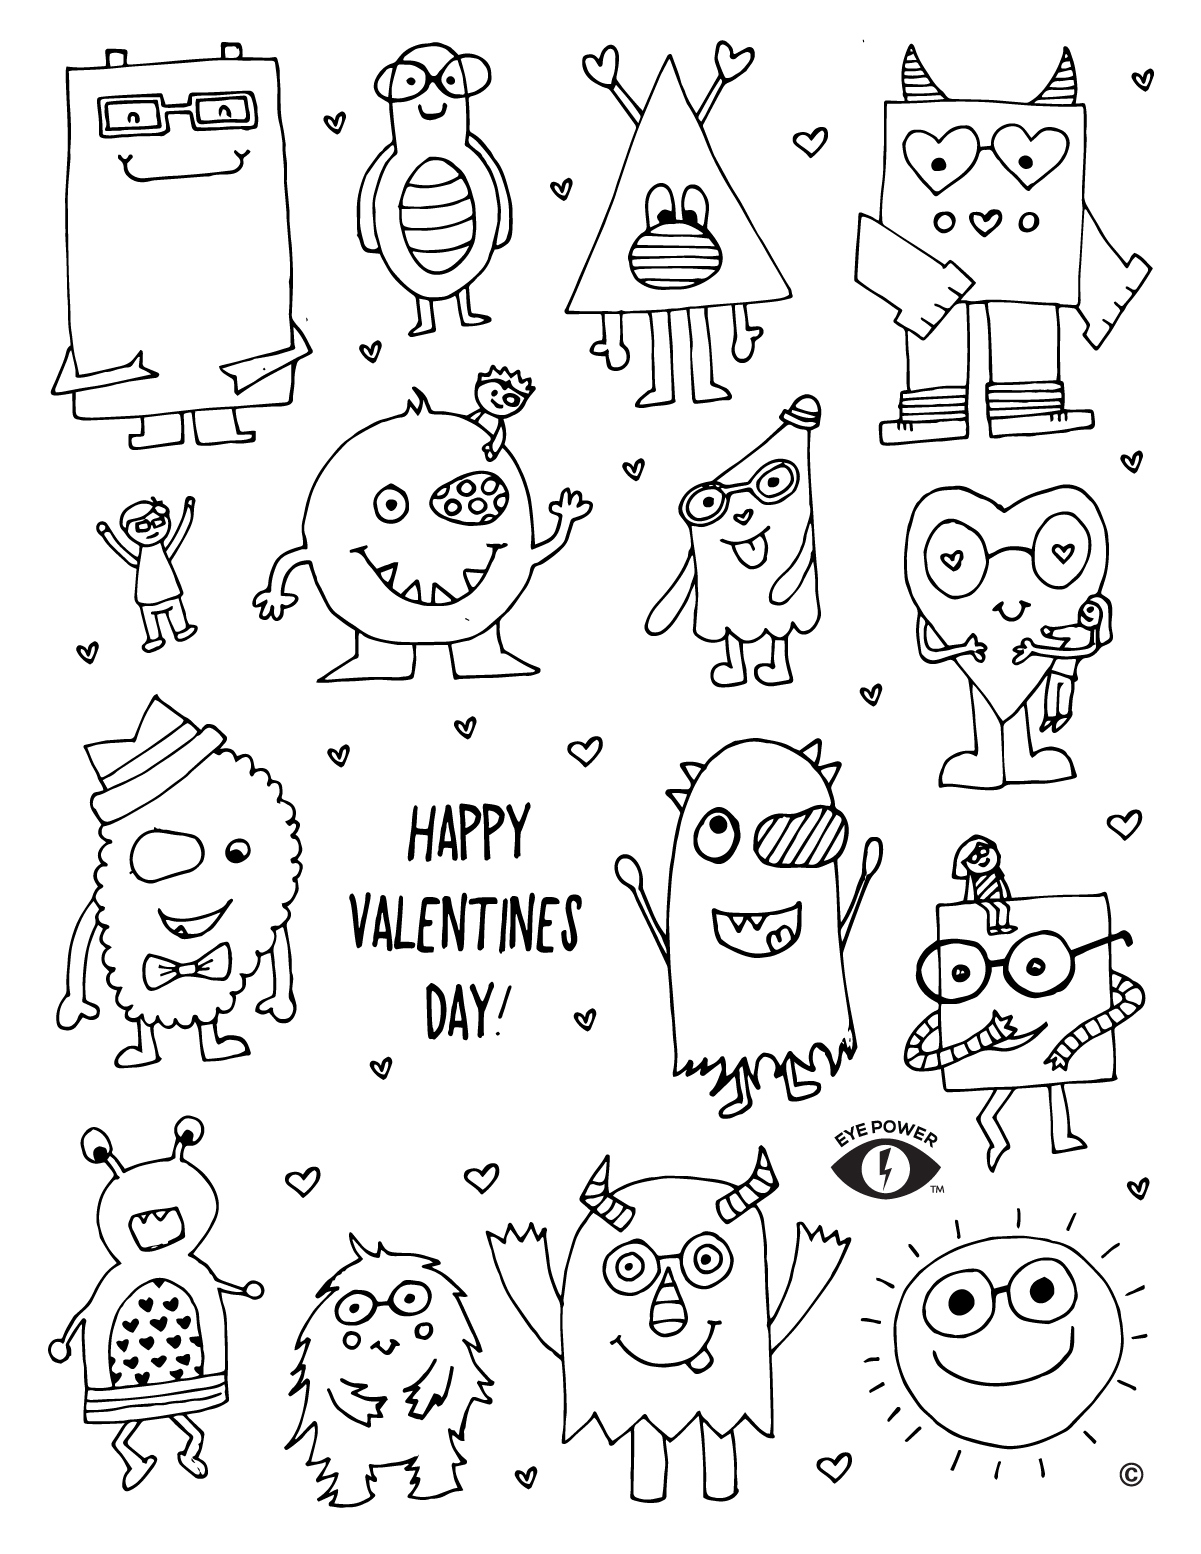 graphic regarding Free Printable Valentine Coloring Pages titled Cost-free Valentines Coloring Website page Printable - Eye Ability Young children Use